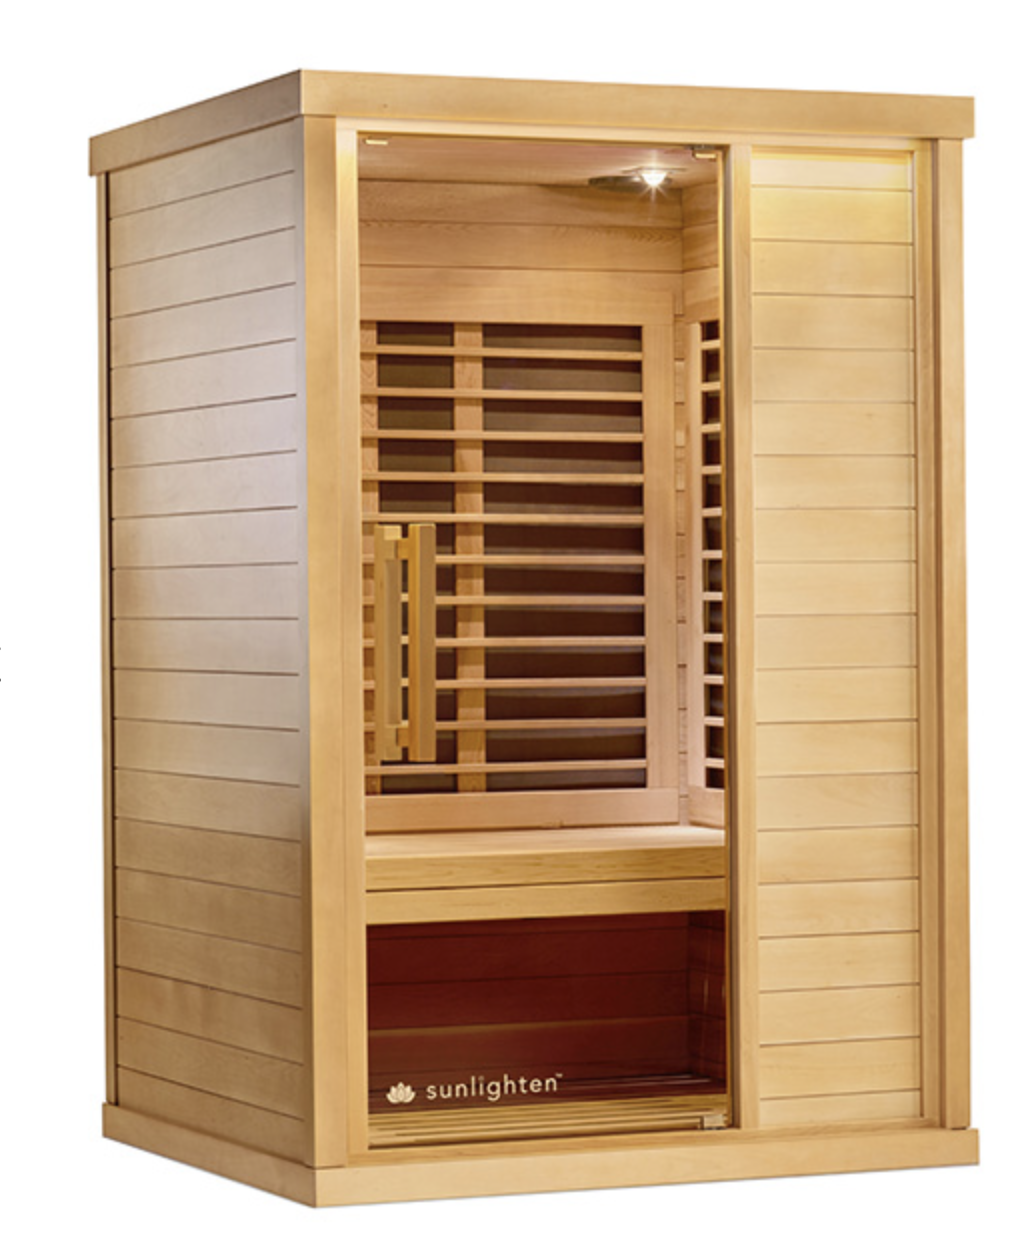 10 Healing Benefits Of Far Infrared Saunas The Art Of Anti Aging I 2020